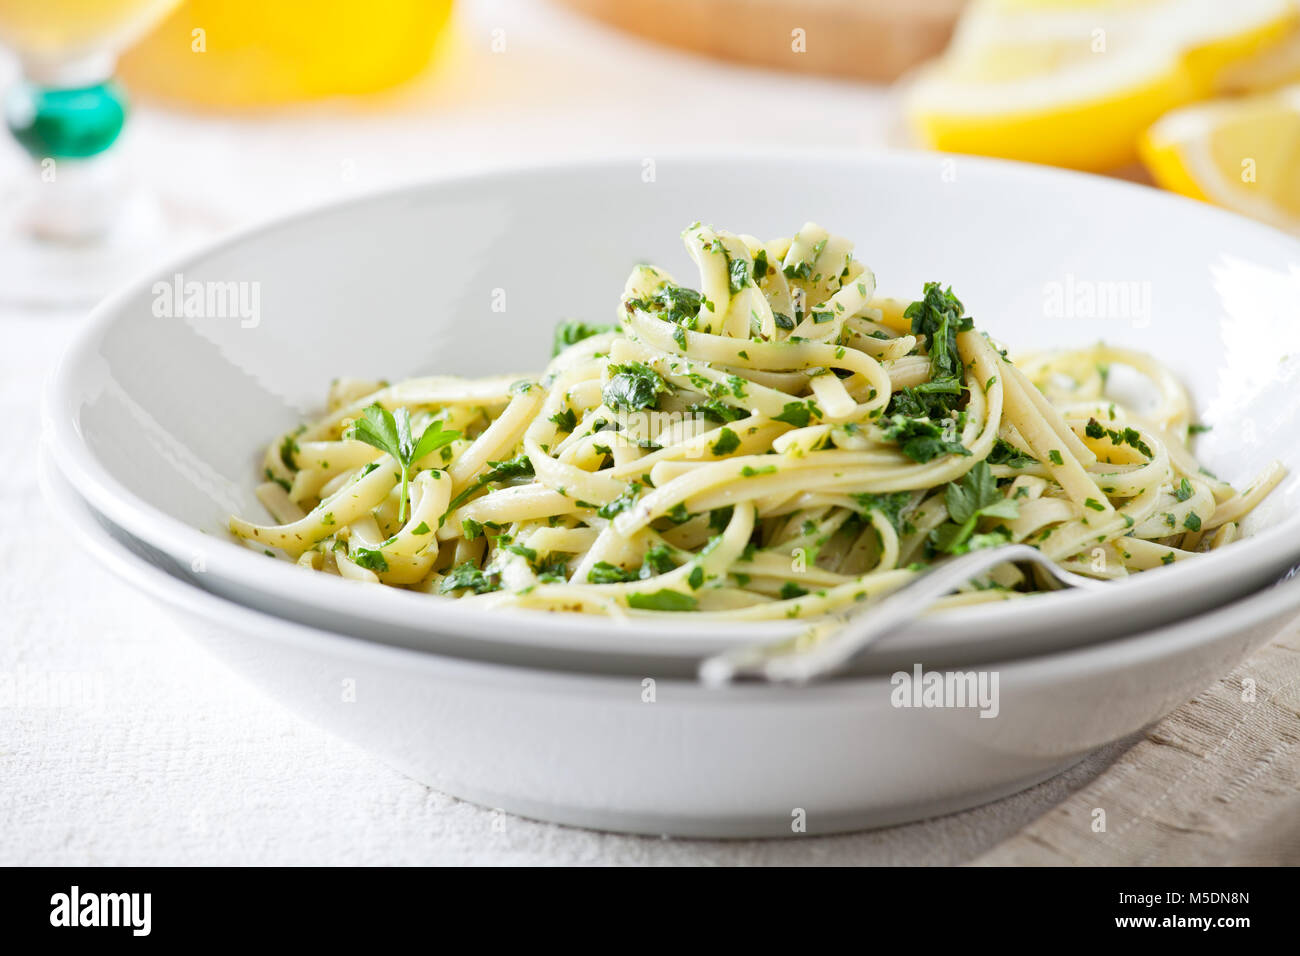 Plate of pasta with some homemade pesto - Stock Image